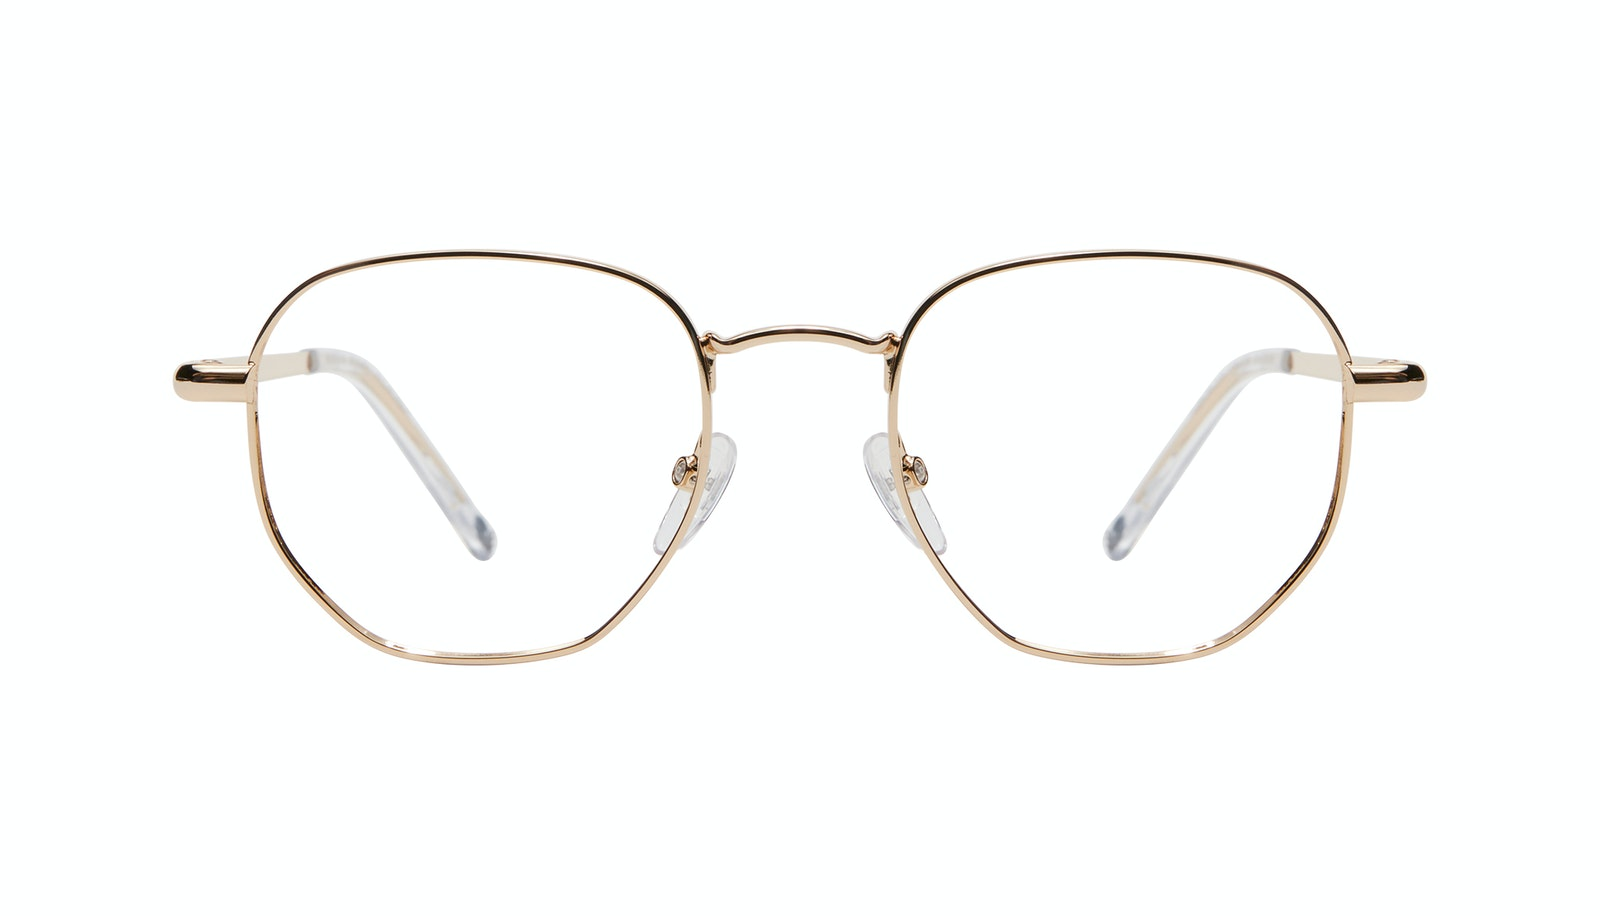 Affordable Fashion Glasses Round Eyeglasses Women Aura Gold